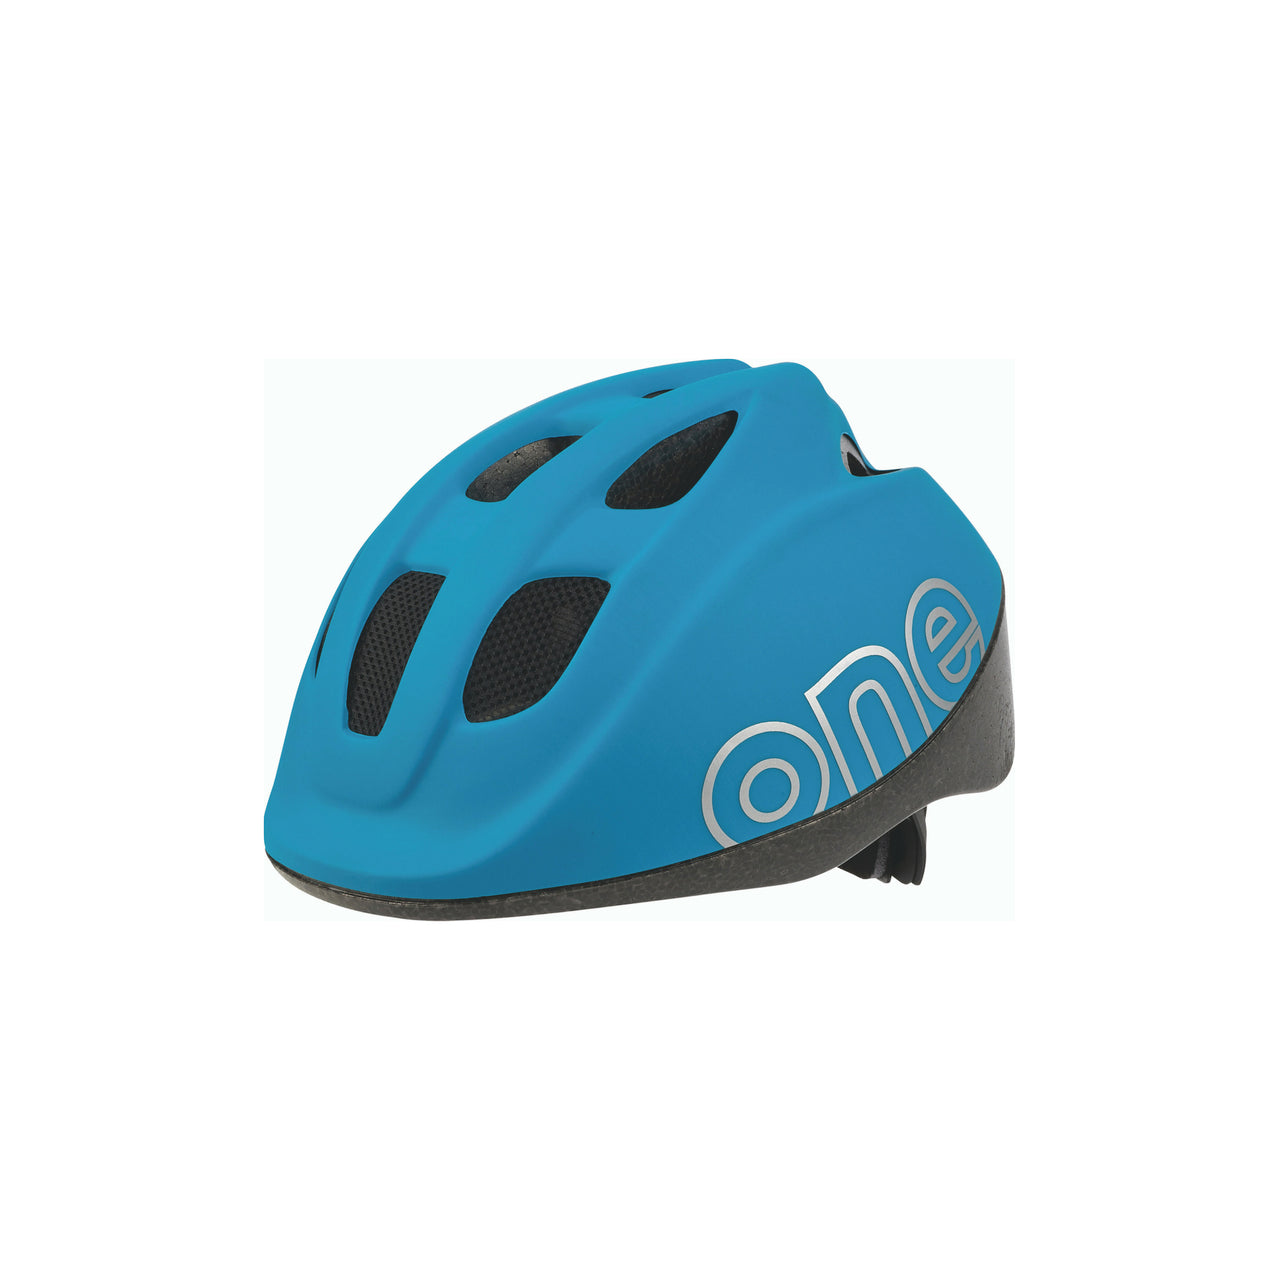 Bobike ONE Child's Helmet